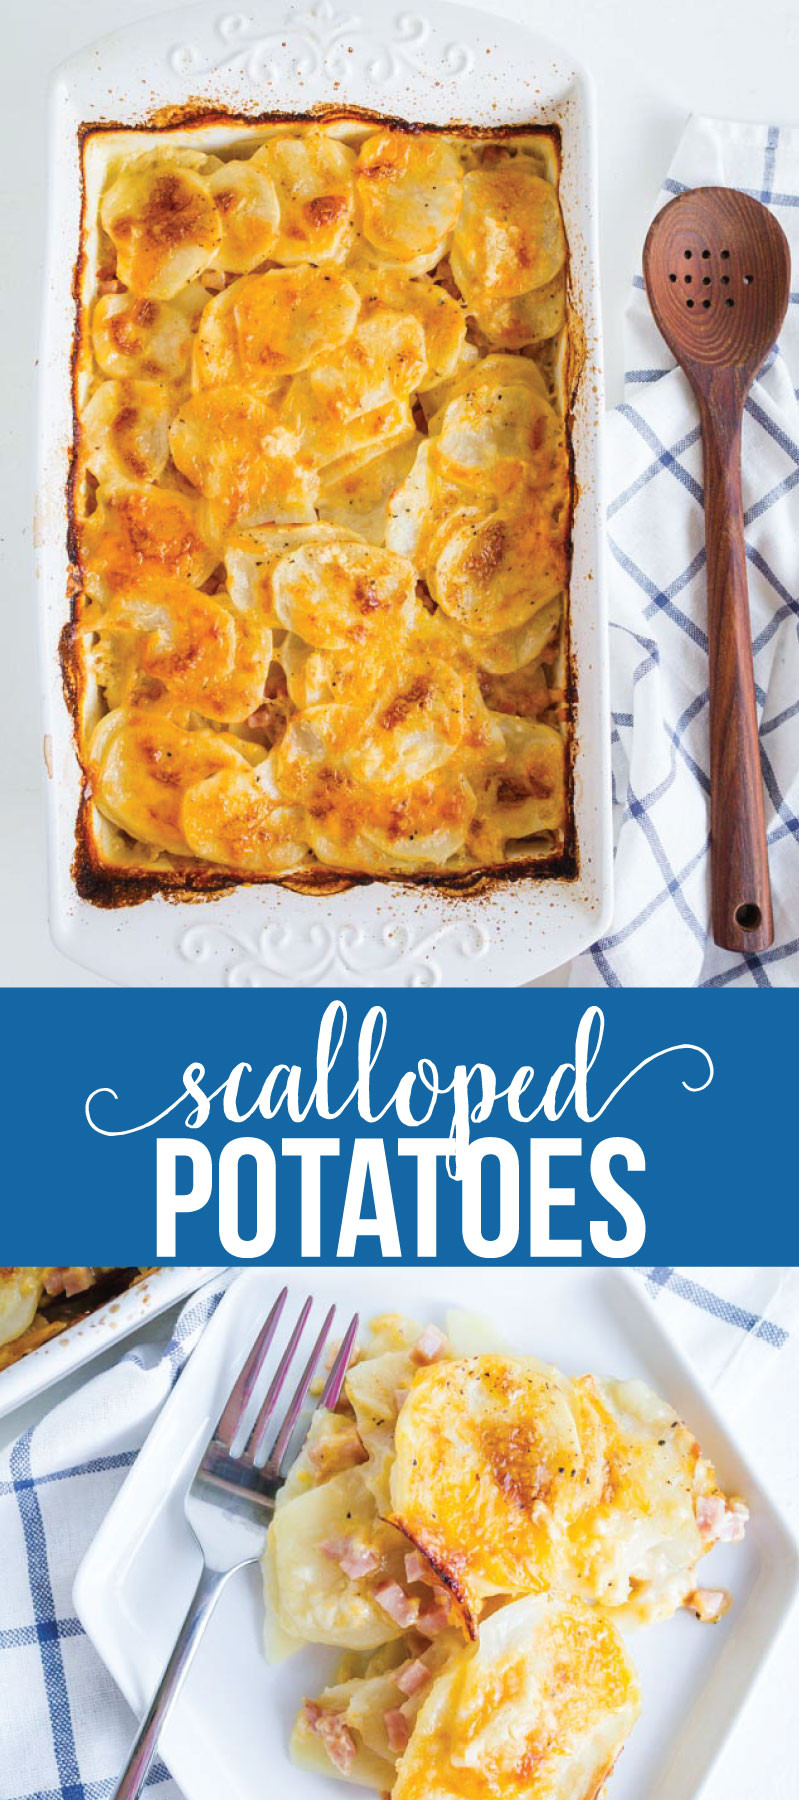 Best Scalloped Potatoes Recipe  best scalloped potato recipe in the world